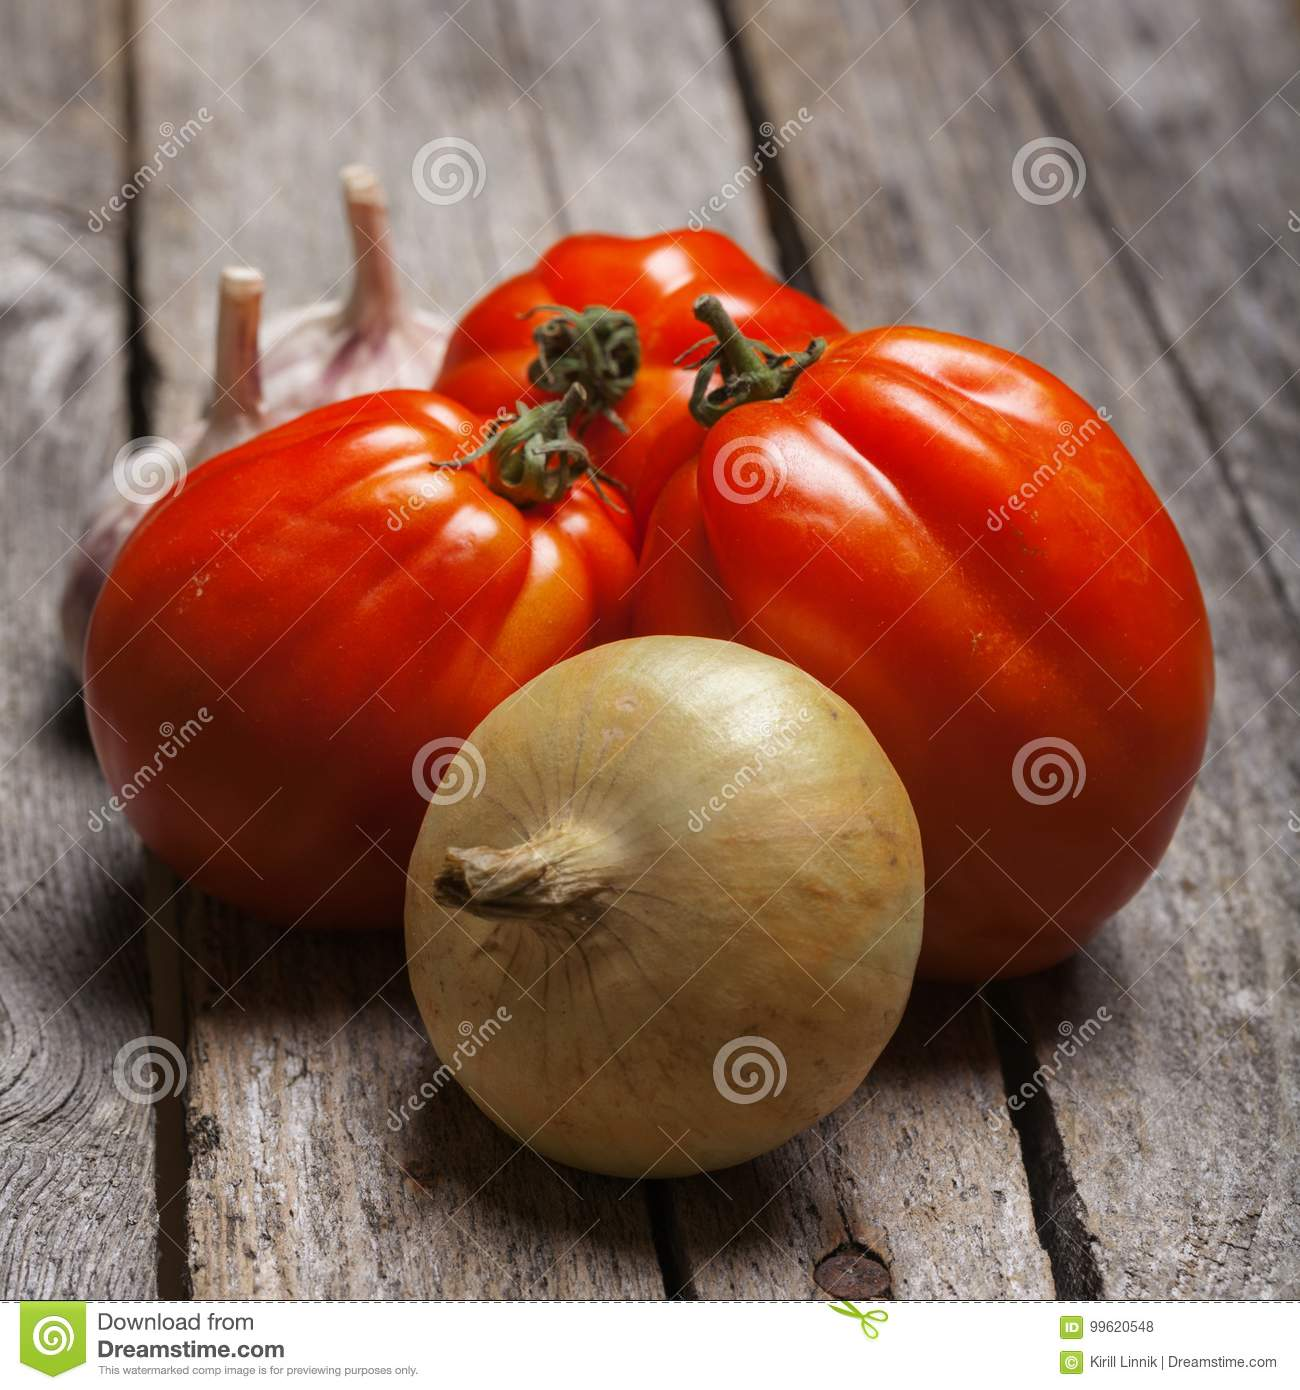 Download Tomatoes, Onion And Garlic On The Table Stock Photo - Image of agriculture, cook: 99620548